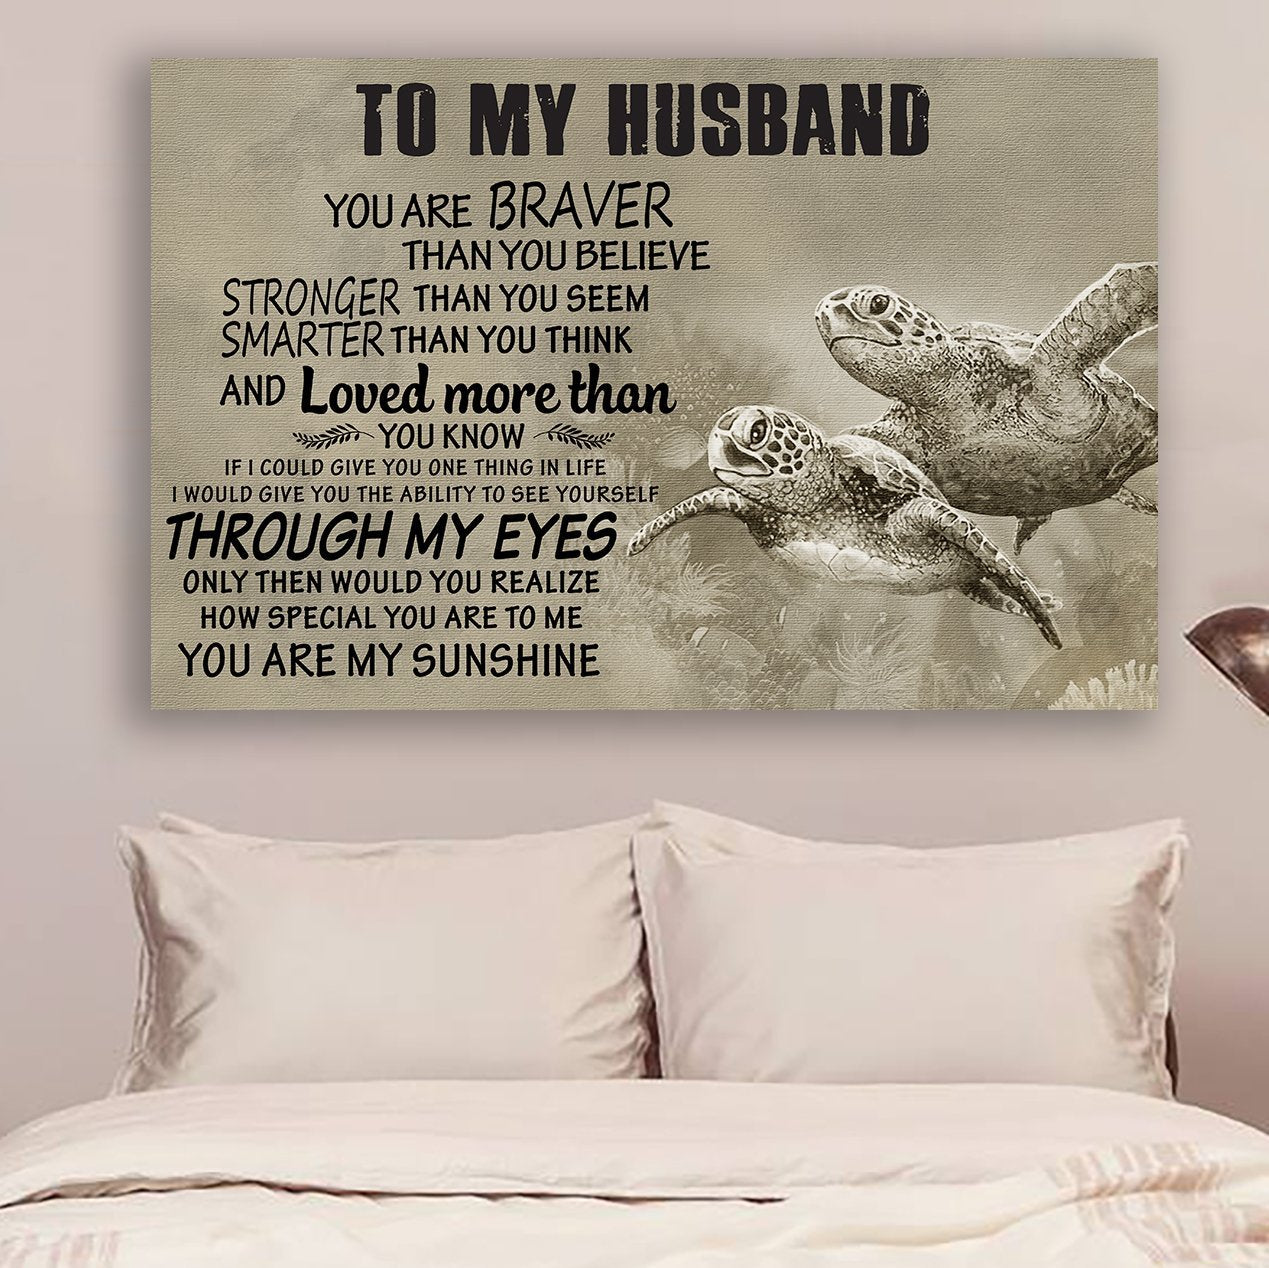 (cv1045) LHD Turtle Poster - To my husband - You are braver